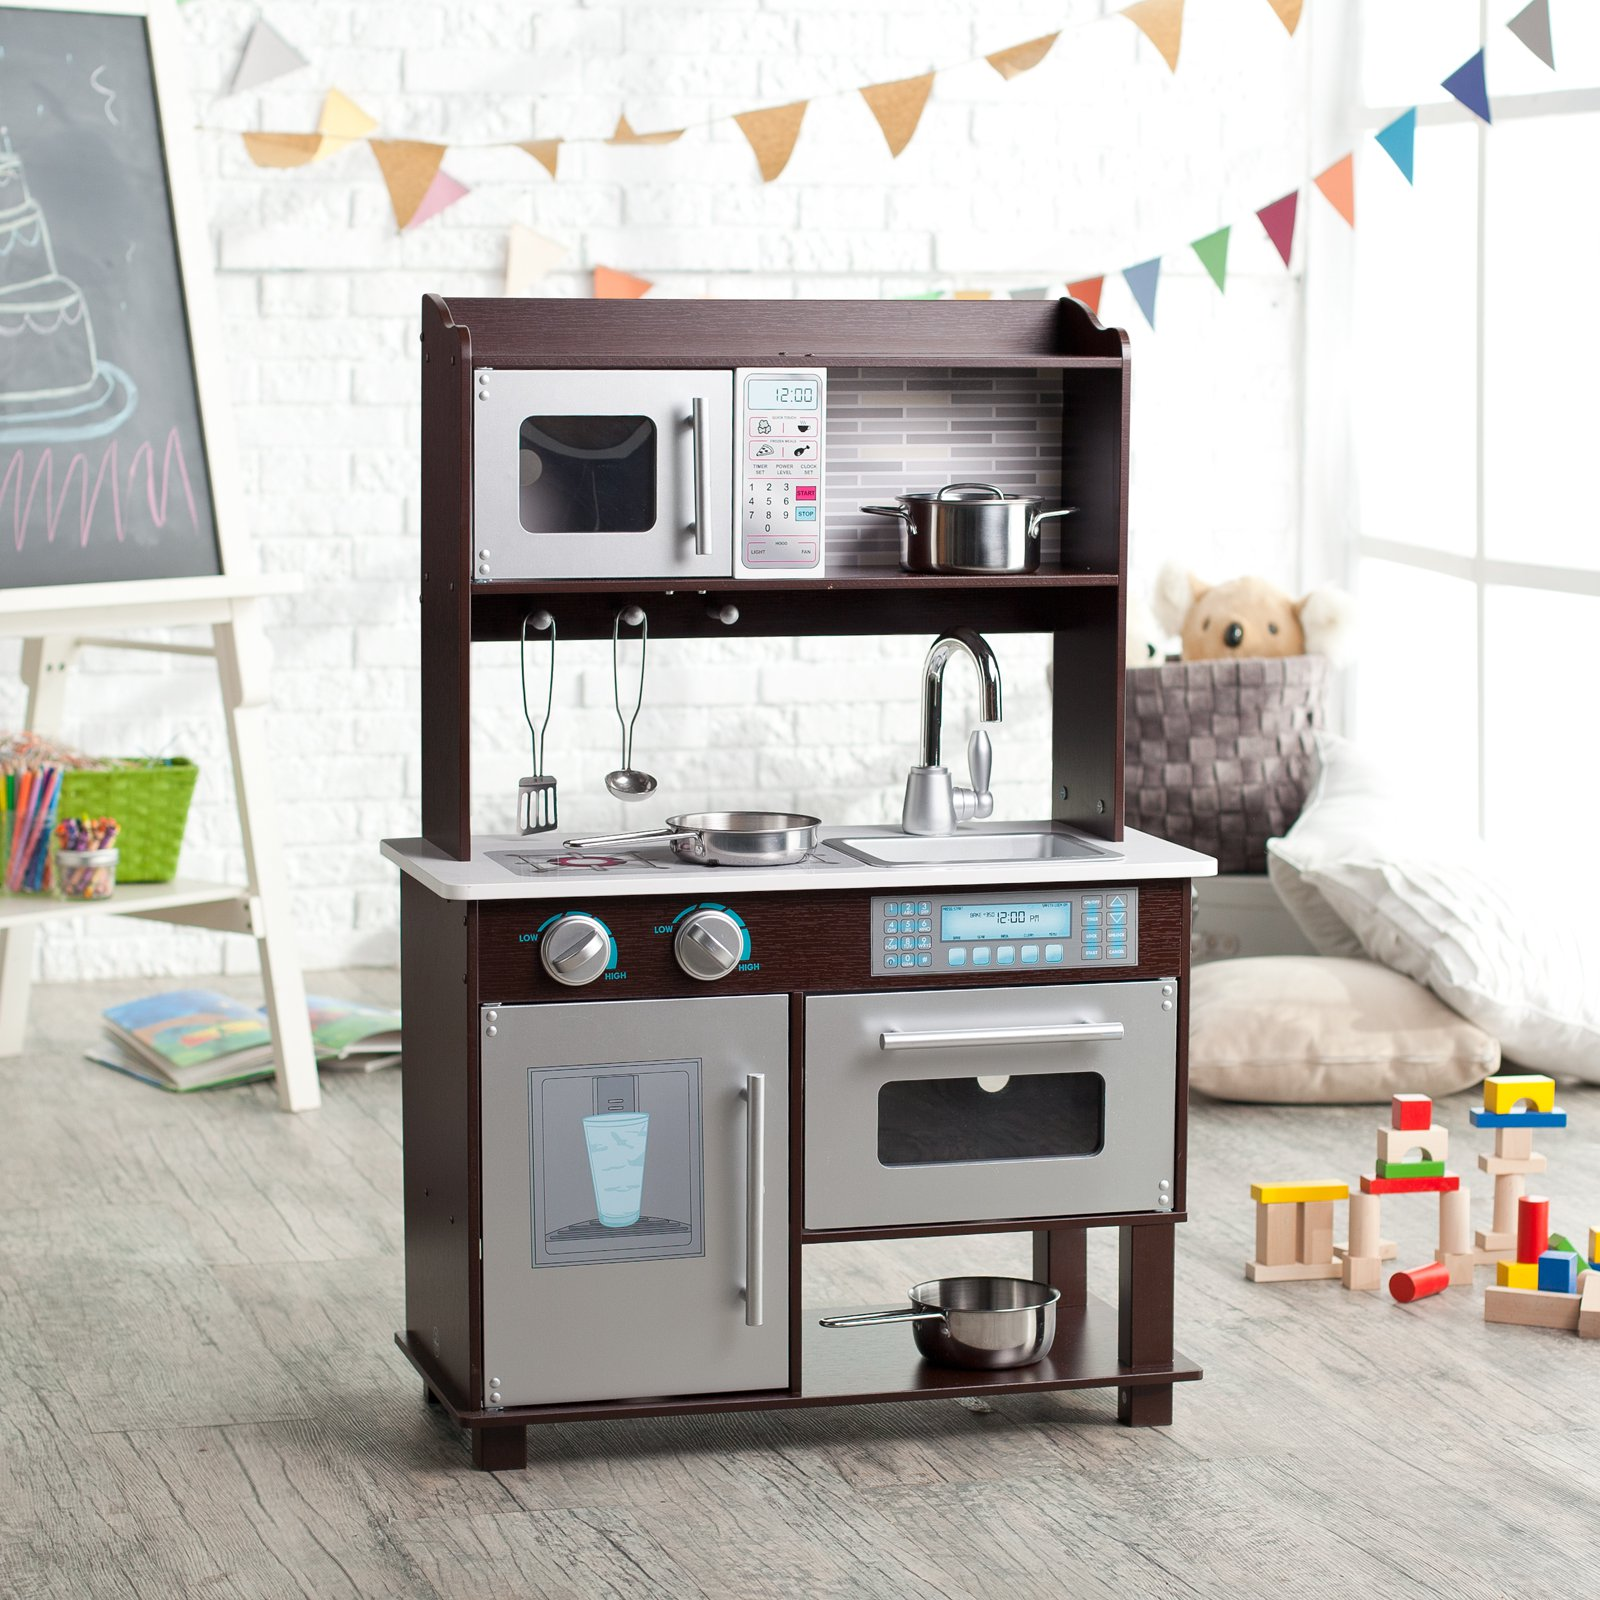 Charmant KidKraft Espresso Toddler Play Kitchen With Metal Accessory Set   53281    Walmart.com